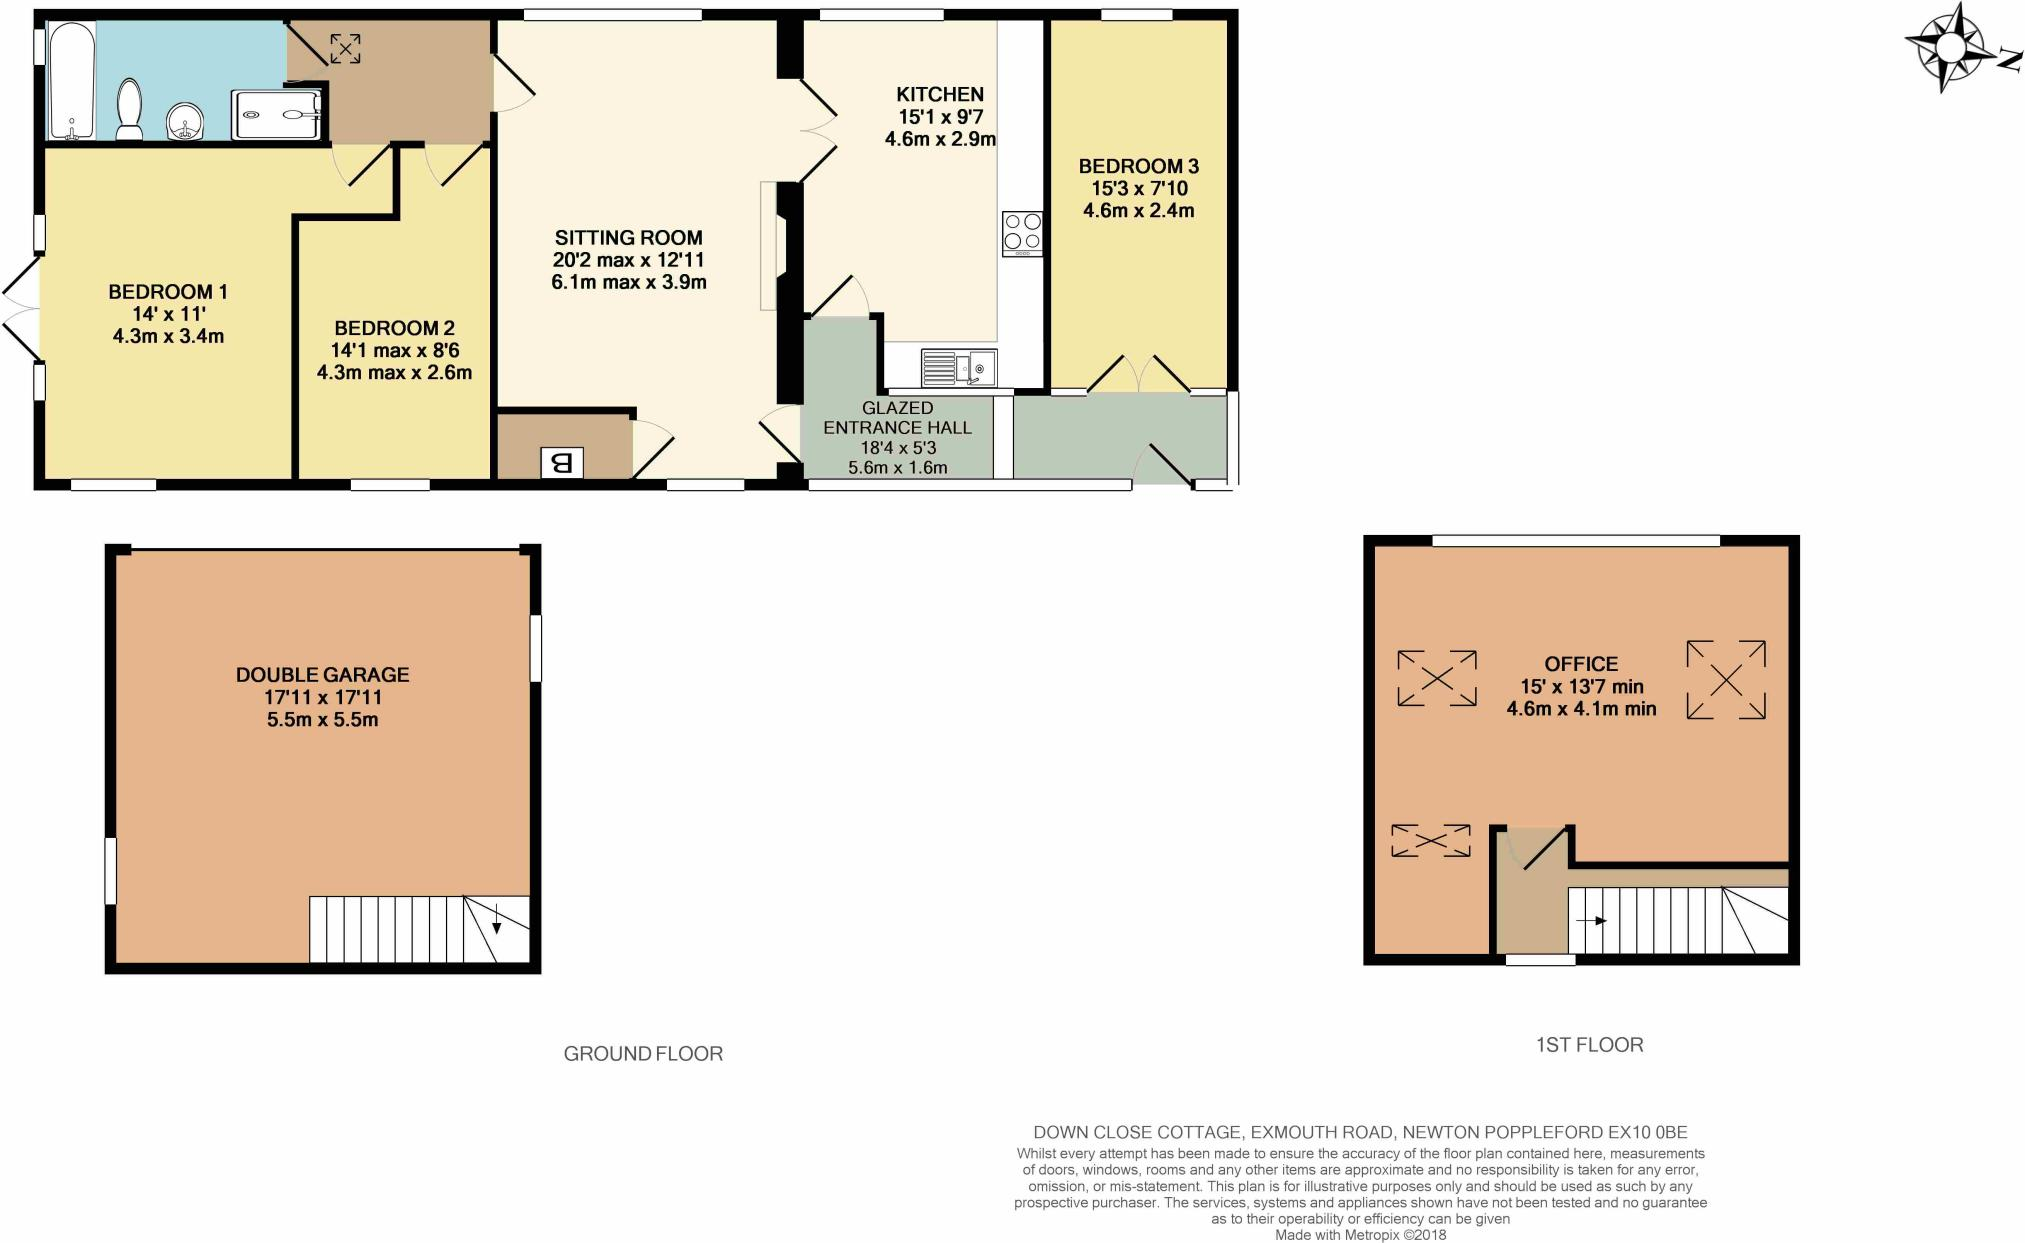 3 Bedroom Detached Bungalow For Sale In Down Close Newton Doubleglazingdiagram01jpg Poppleford Ex10